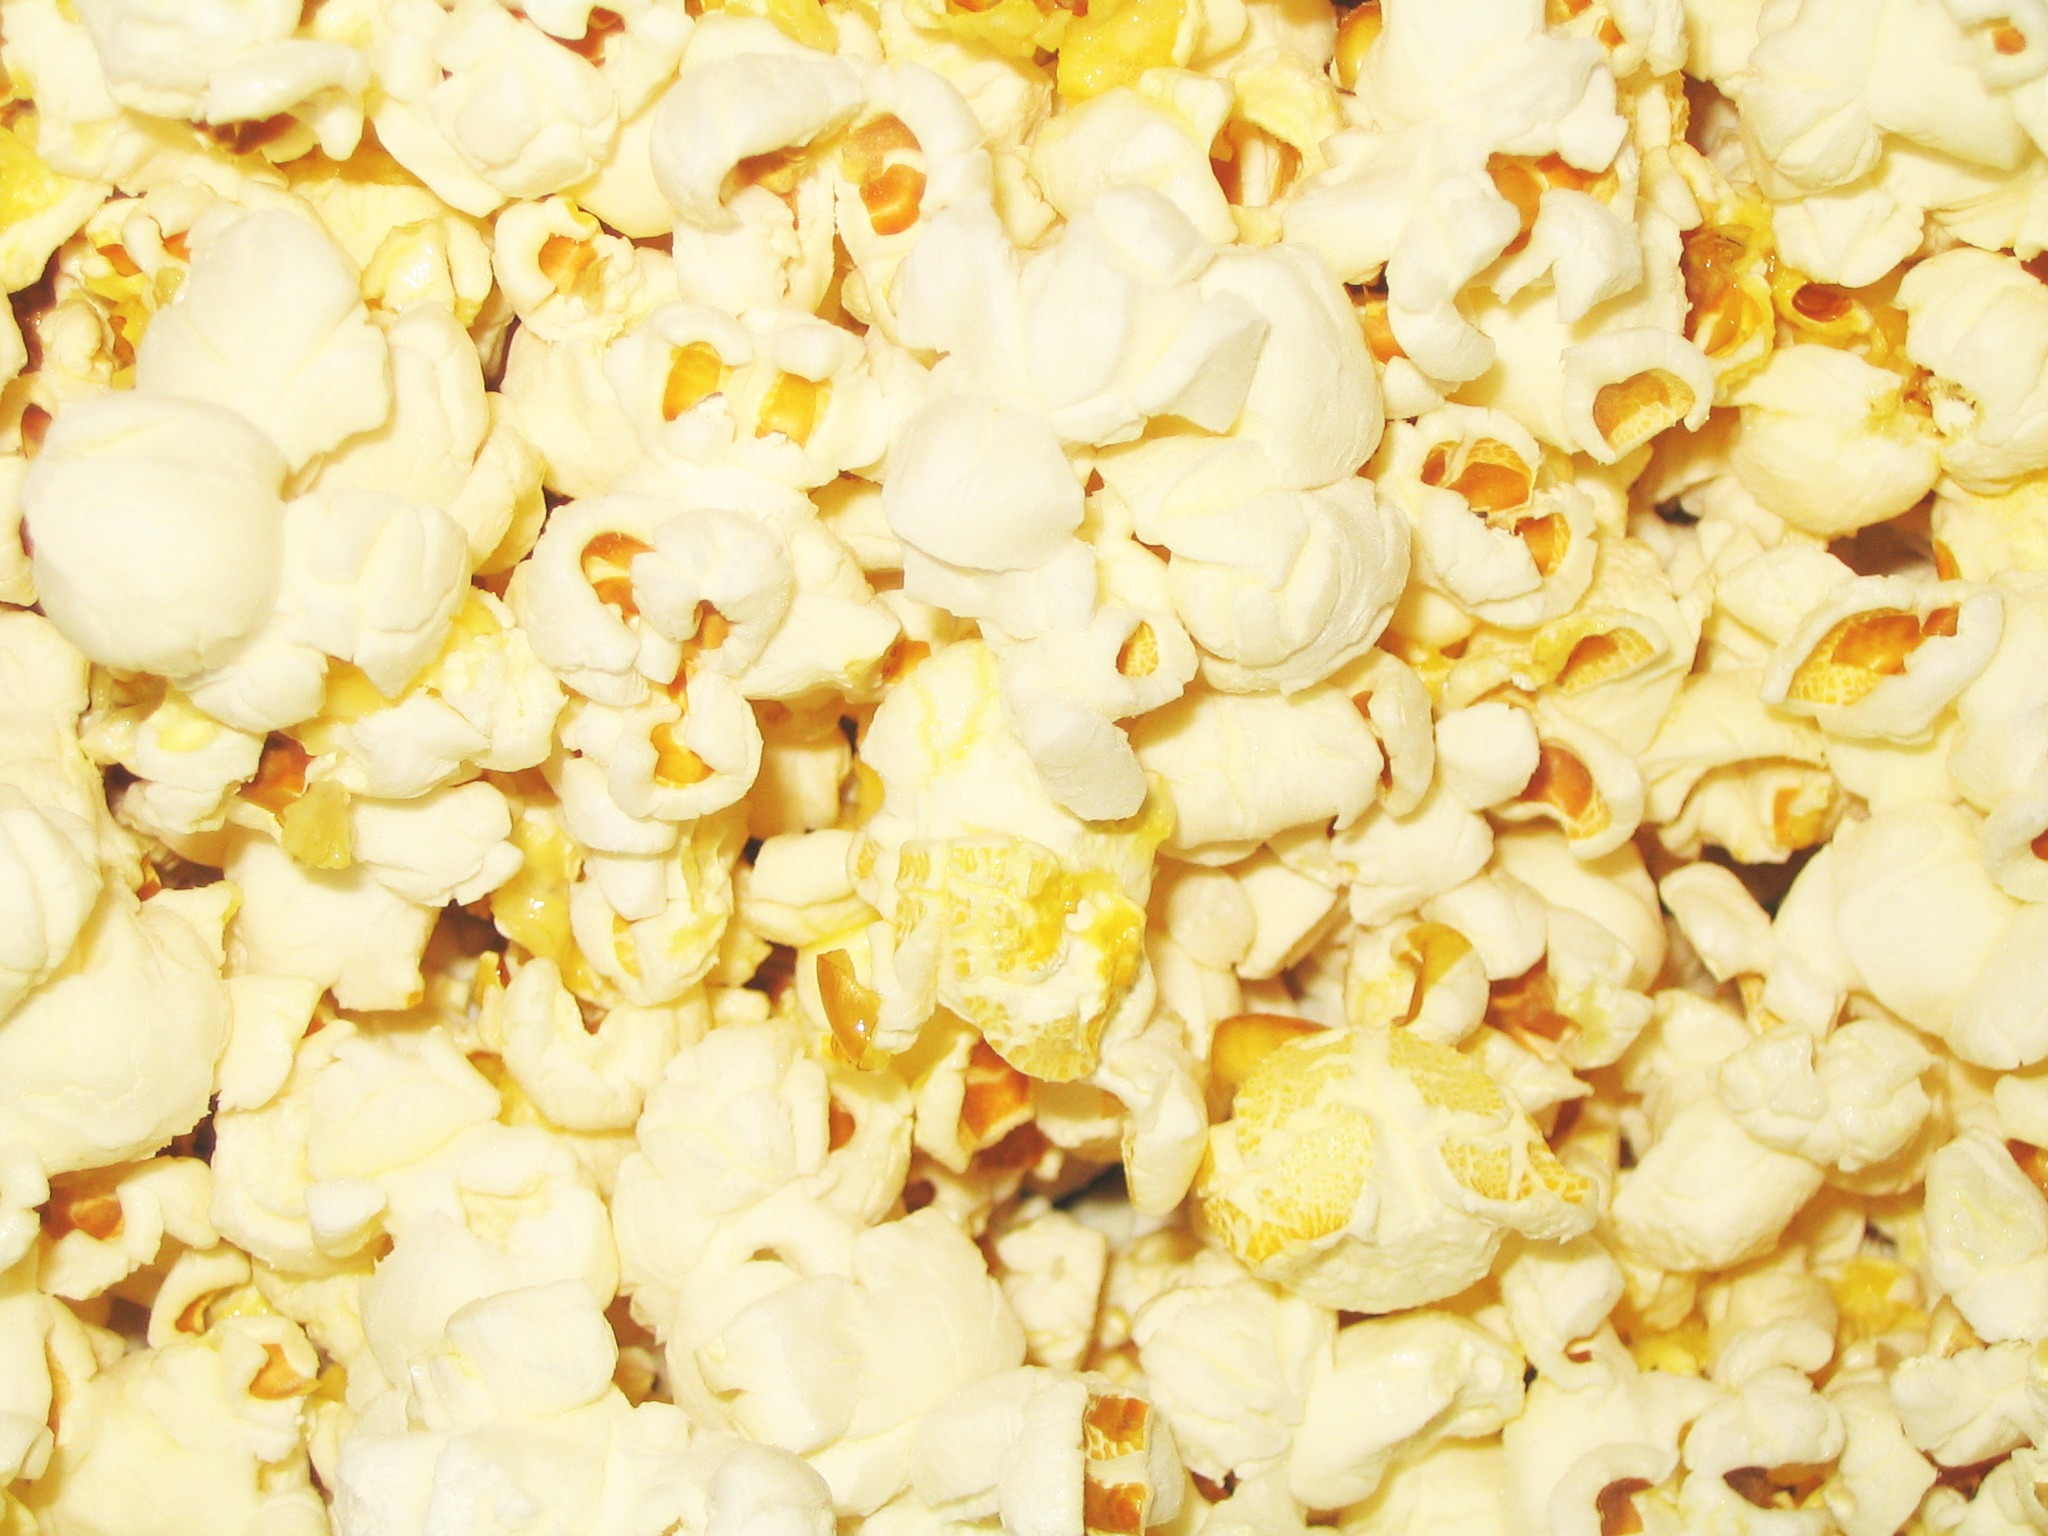 Is Your Popcorn Laced With Hormone-Disrupting Chemicals?